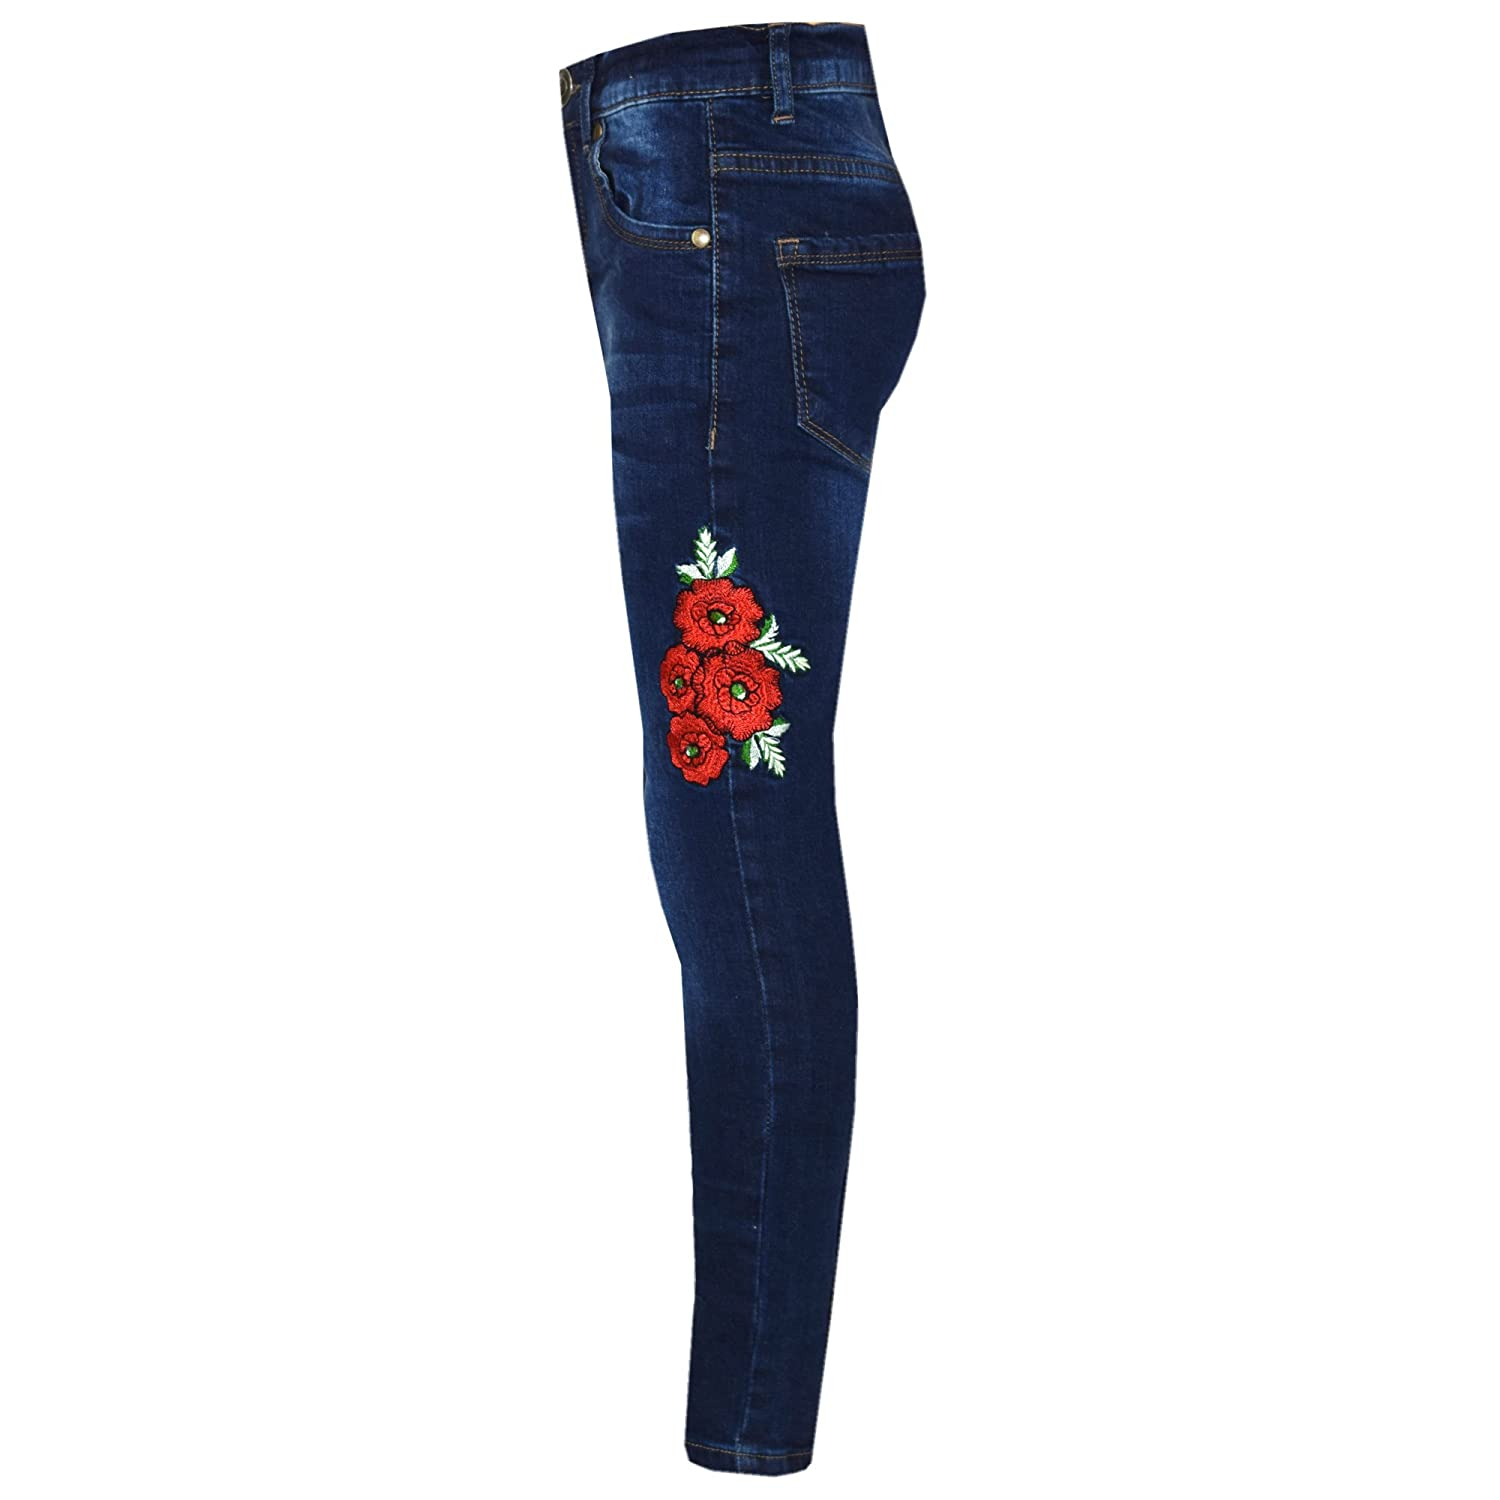 Girls Kids Childrens Stretch Denim Jeans Ripped Or Embroidered Flowers Ages 5-13 Generic